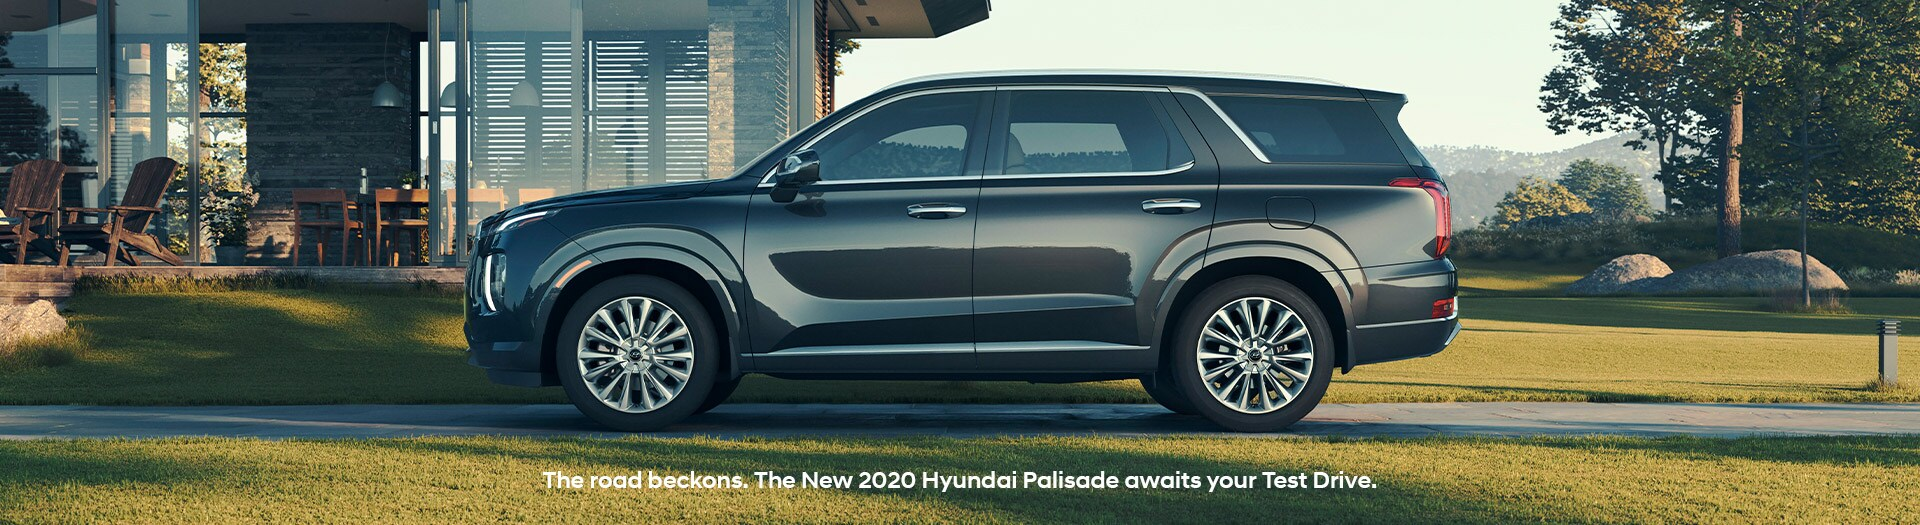 Test Drive the 2020 Hyundai Palisade in Surprise, AZ